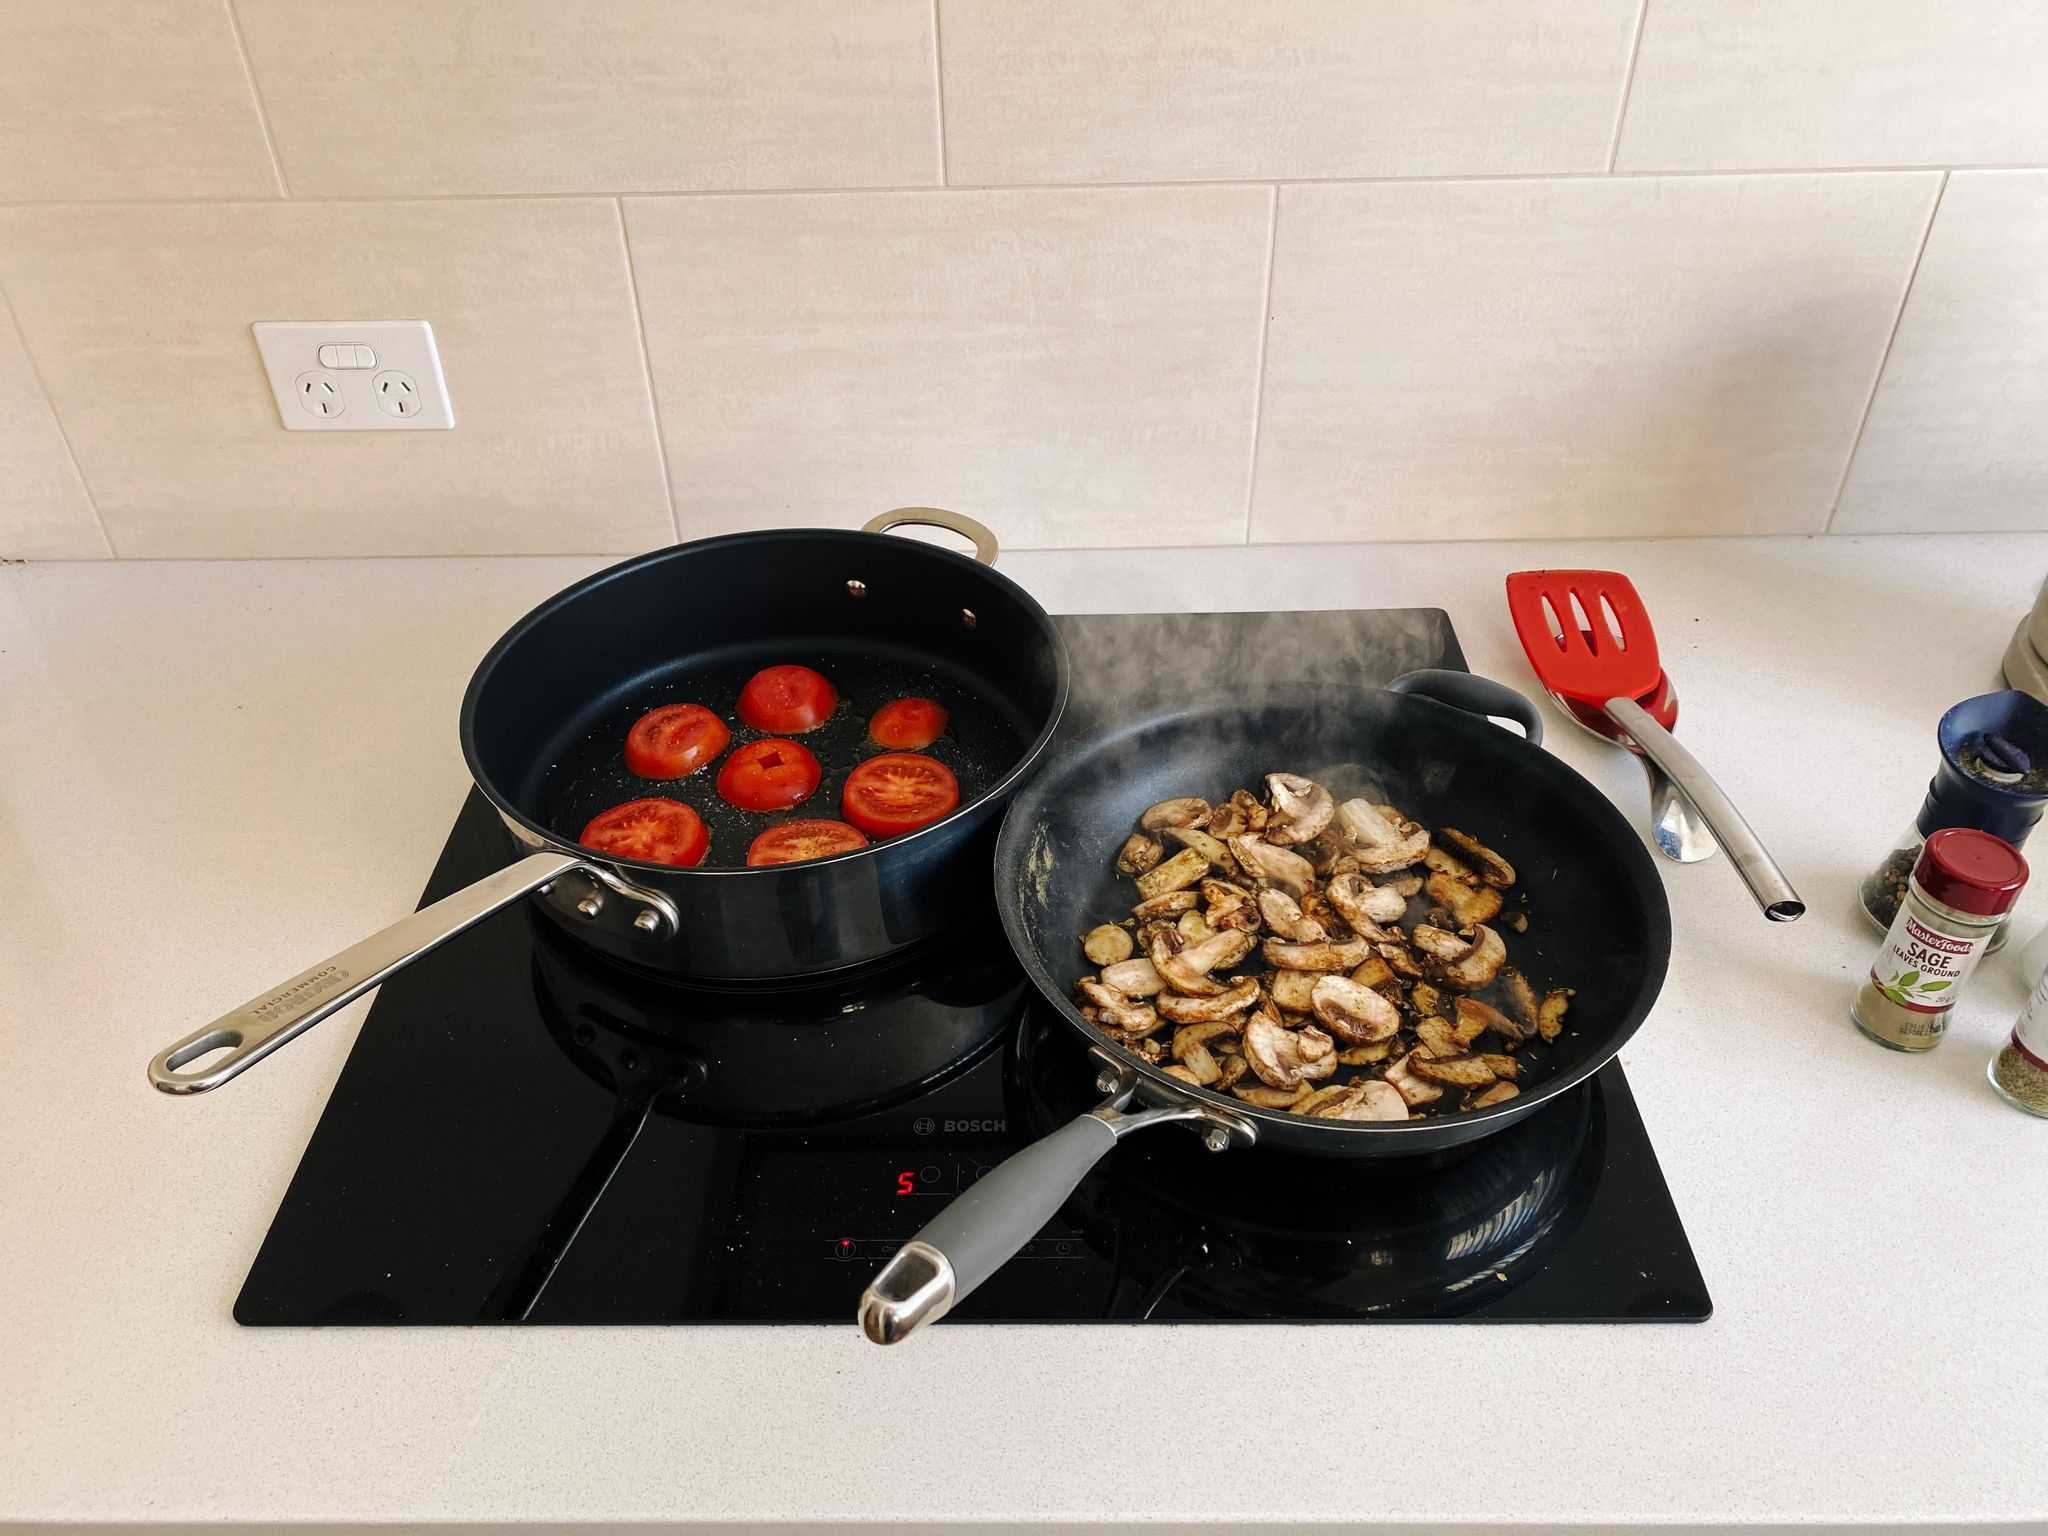 A photo of two frying pans on a stove, one with sliced tomatoes in it, the other with mushrooms.